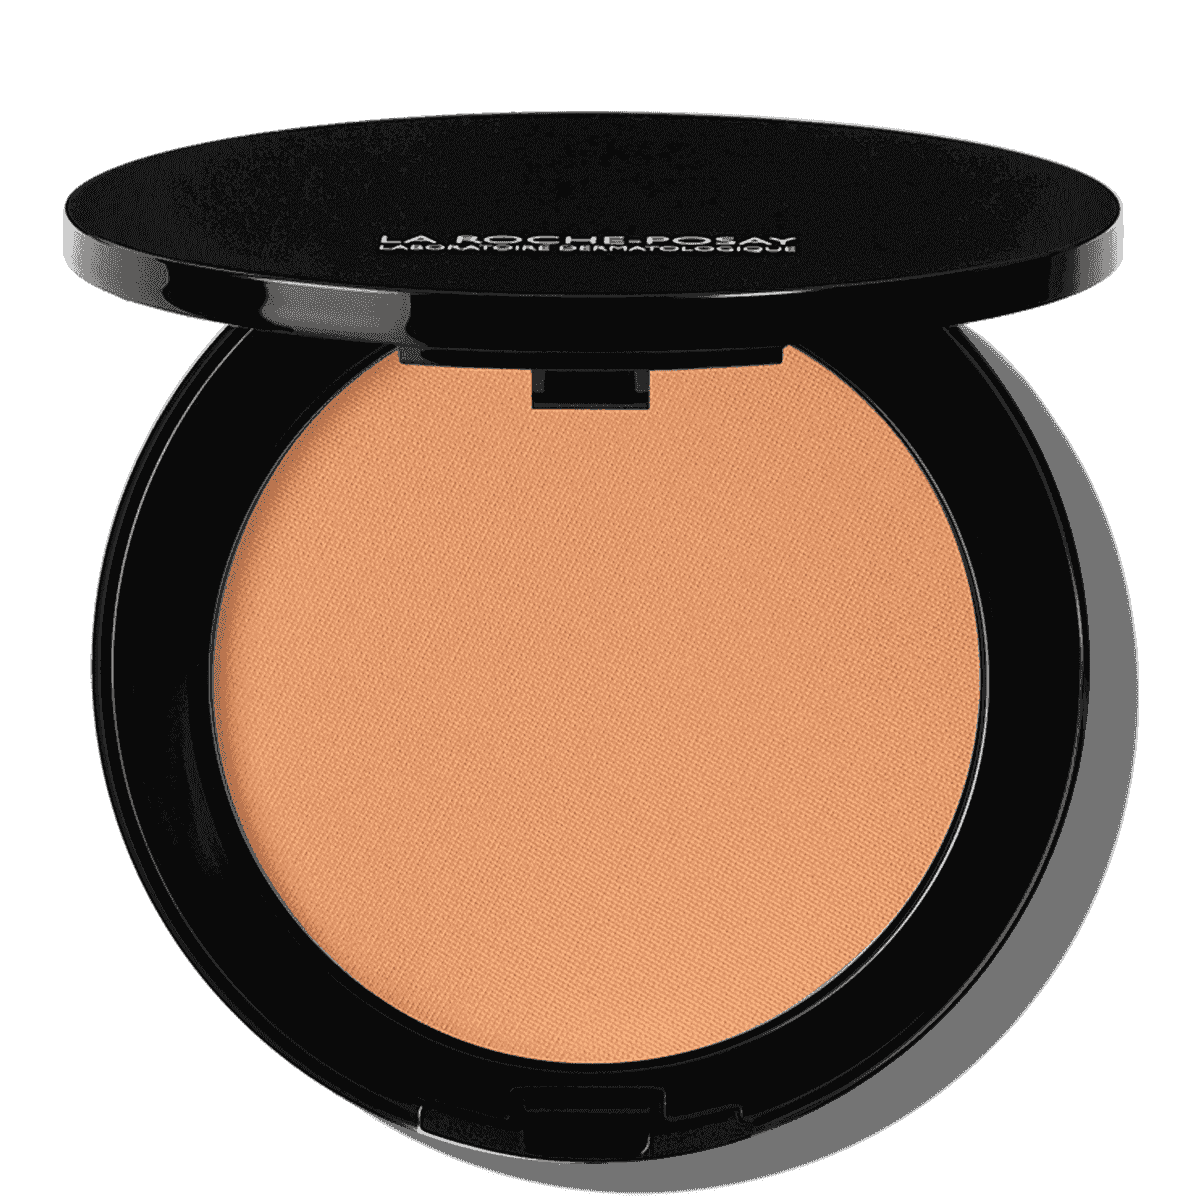 La Roche Posay Sensitive Toleriane Make up COMPACT_POWDER_15Golden 333